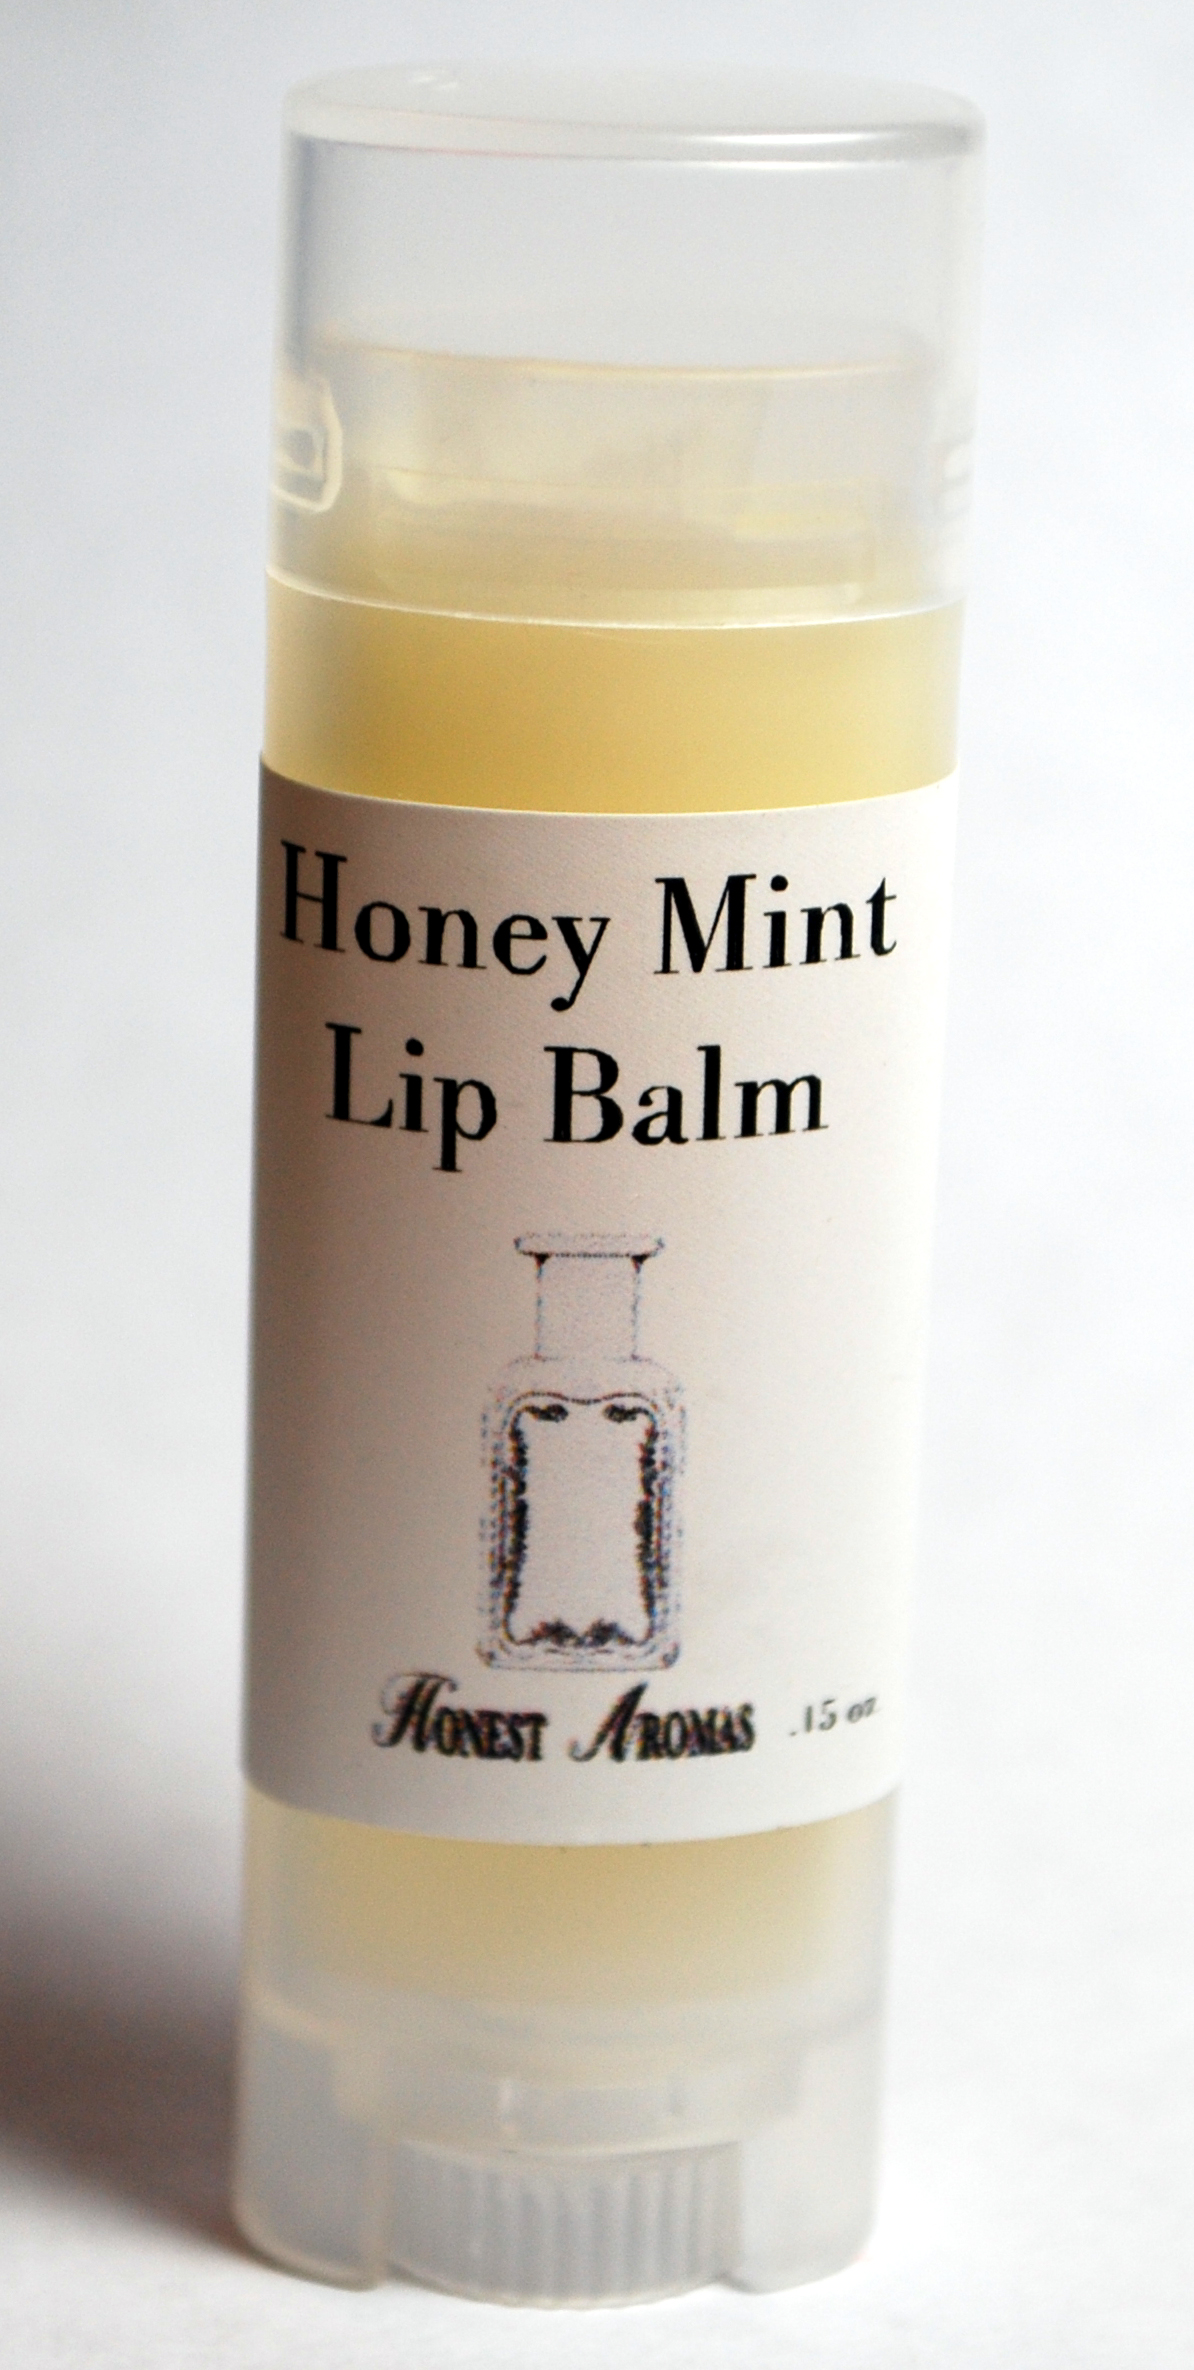 Honey Mint Lip Balm